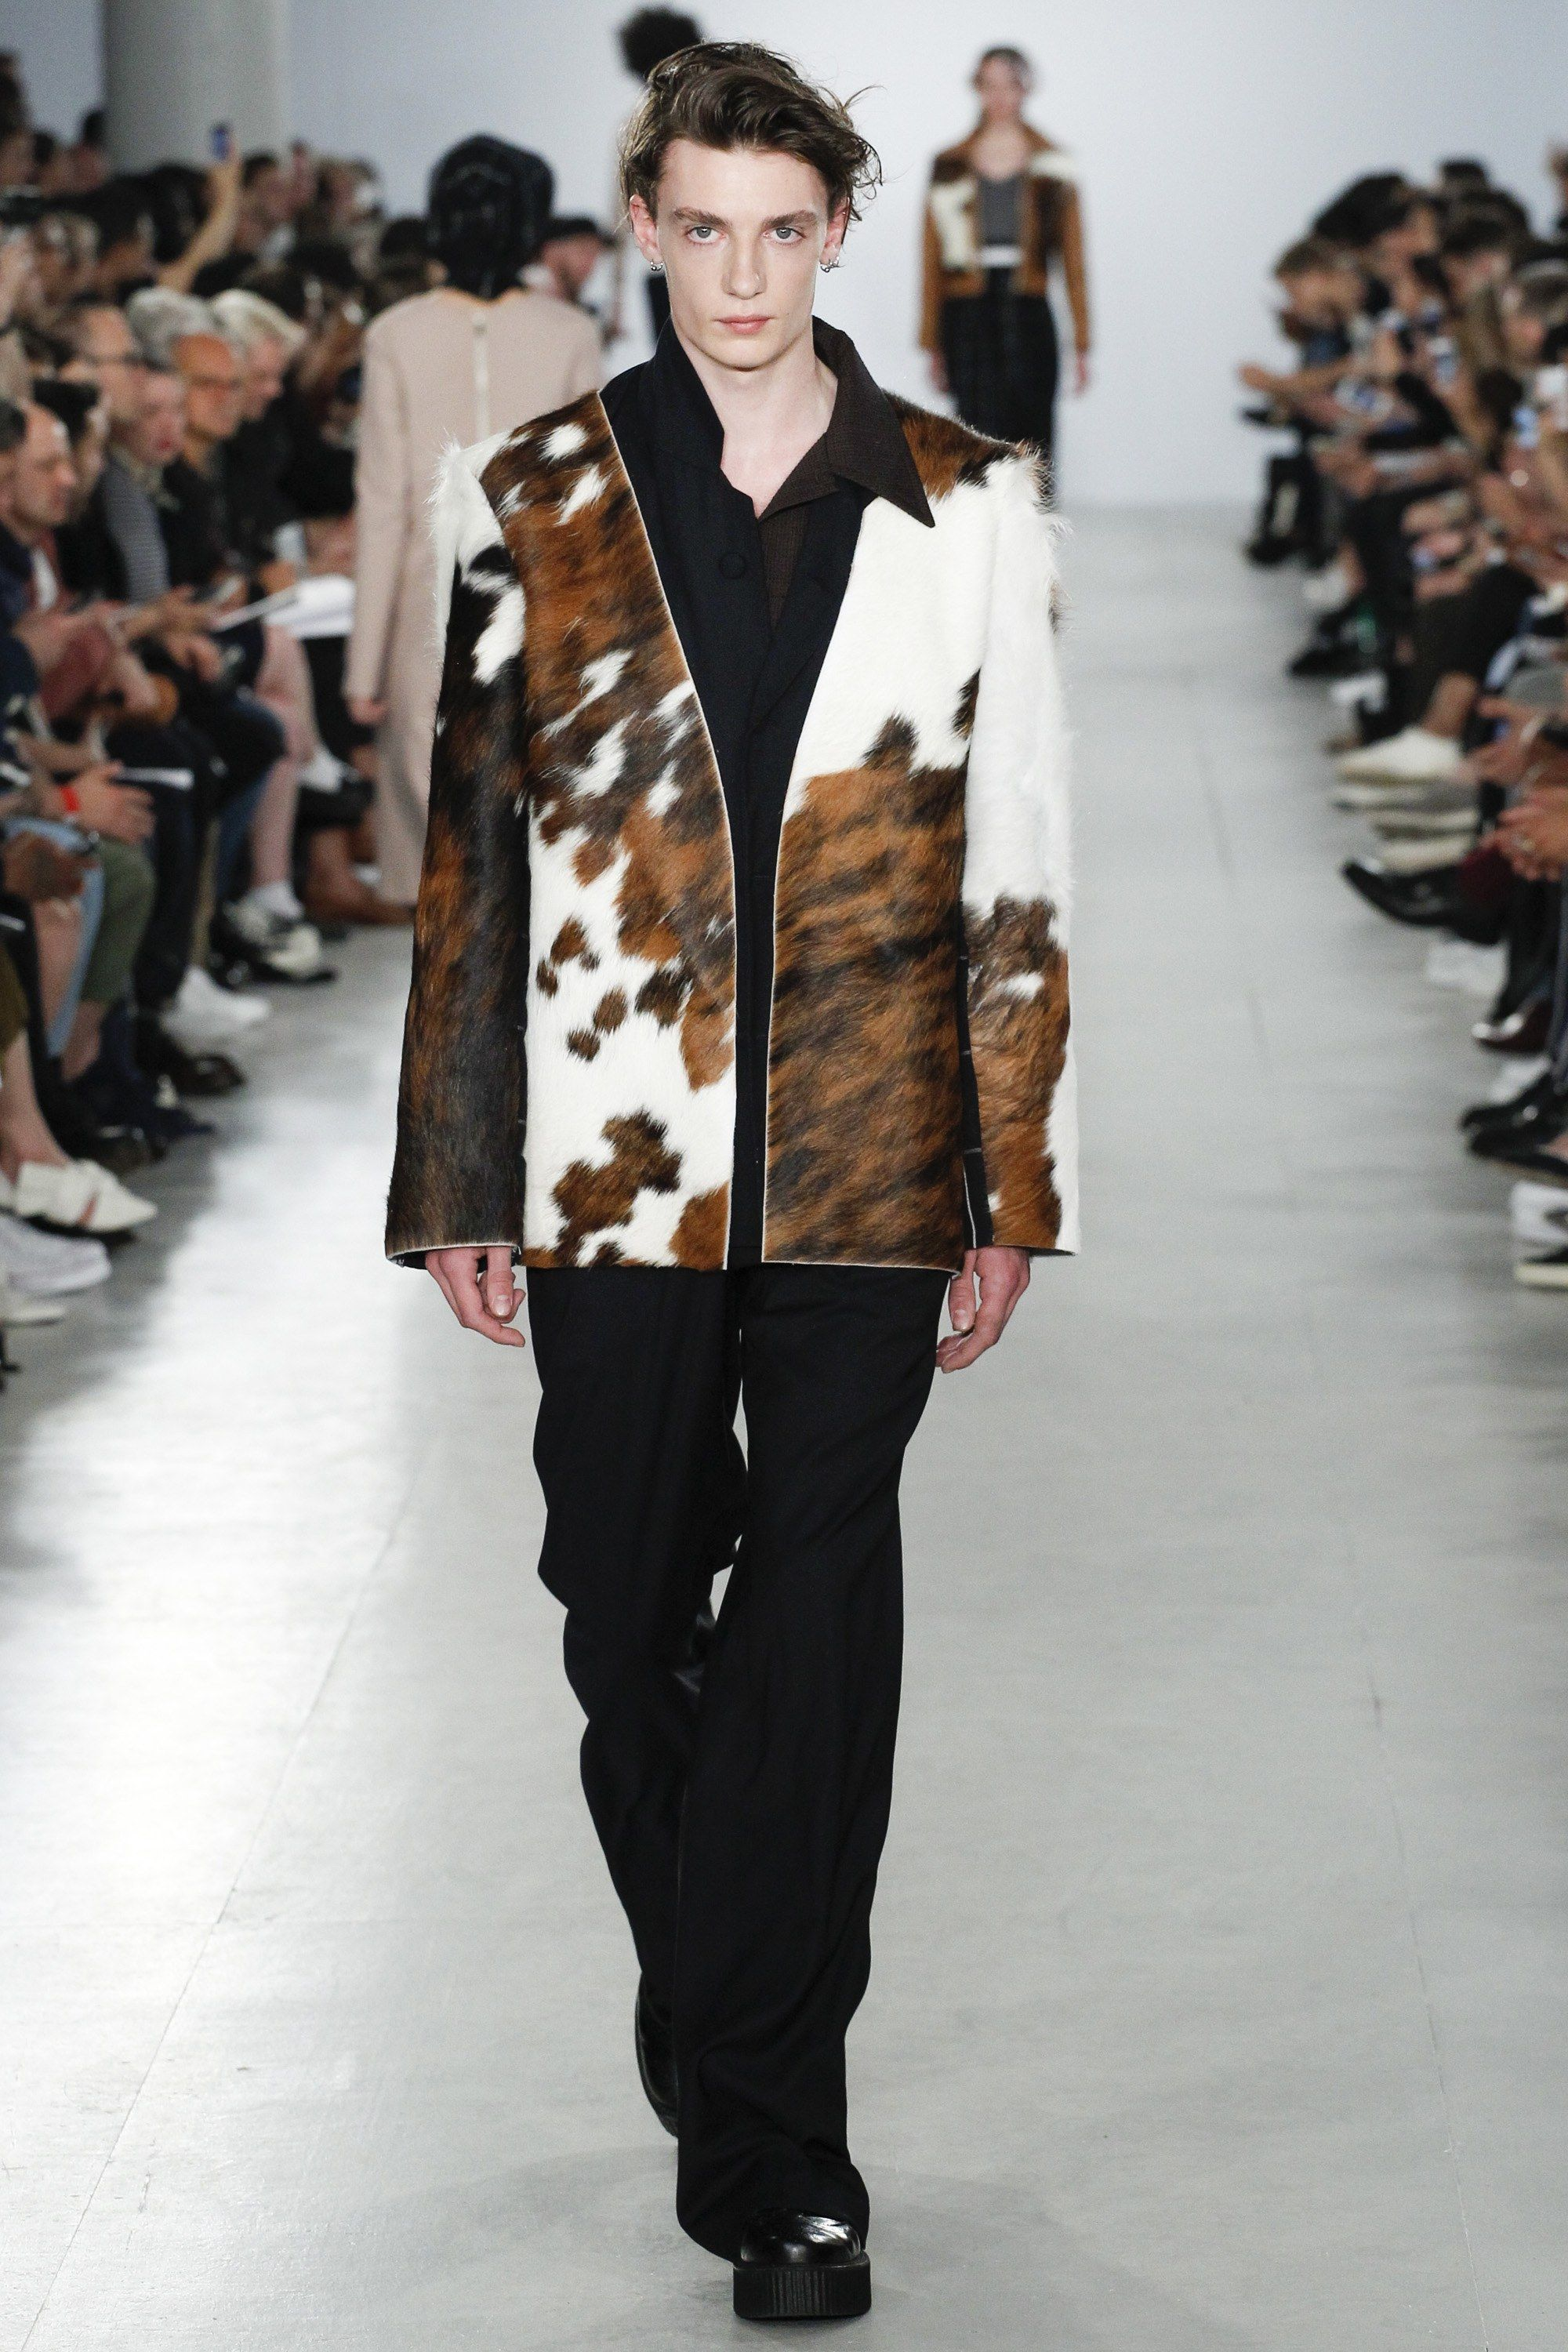 agi sam spring 2017 menswear fashion show spring photos and vogue was the question posed at agi sam s show this morning sam looked to his own childhood drawing inspiration from his father and mother who